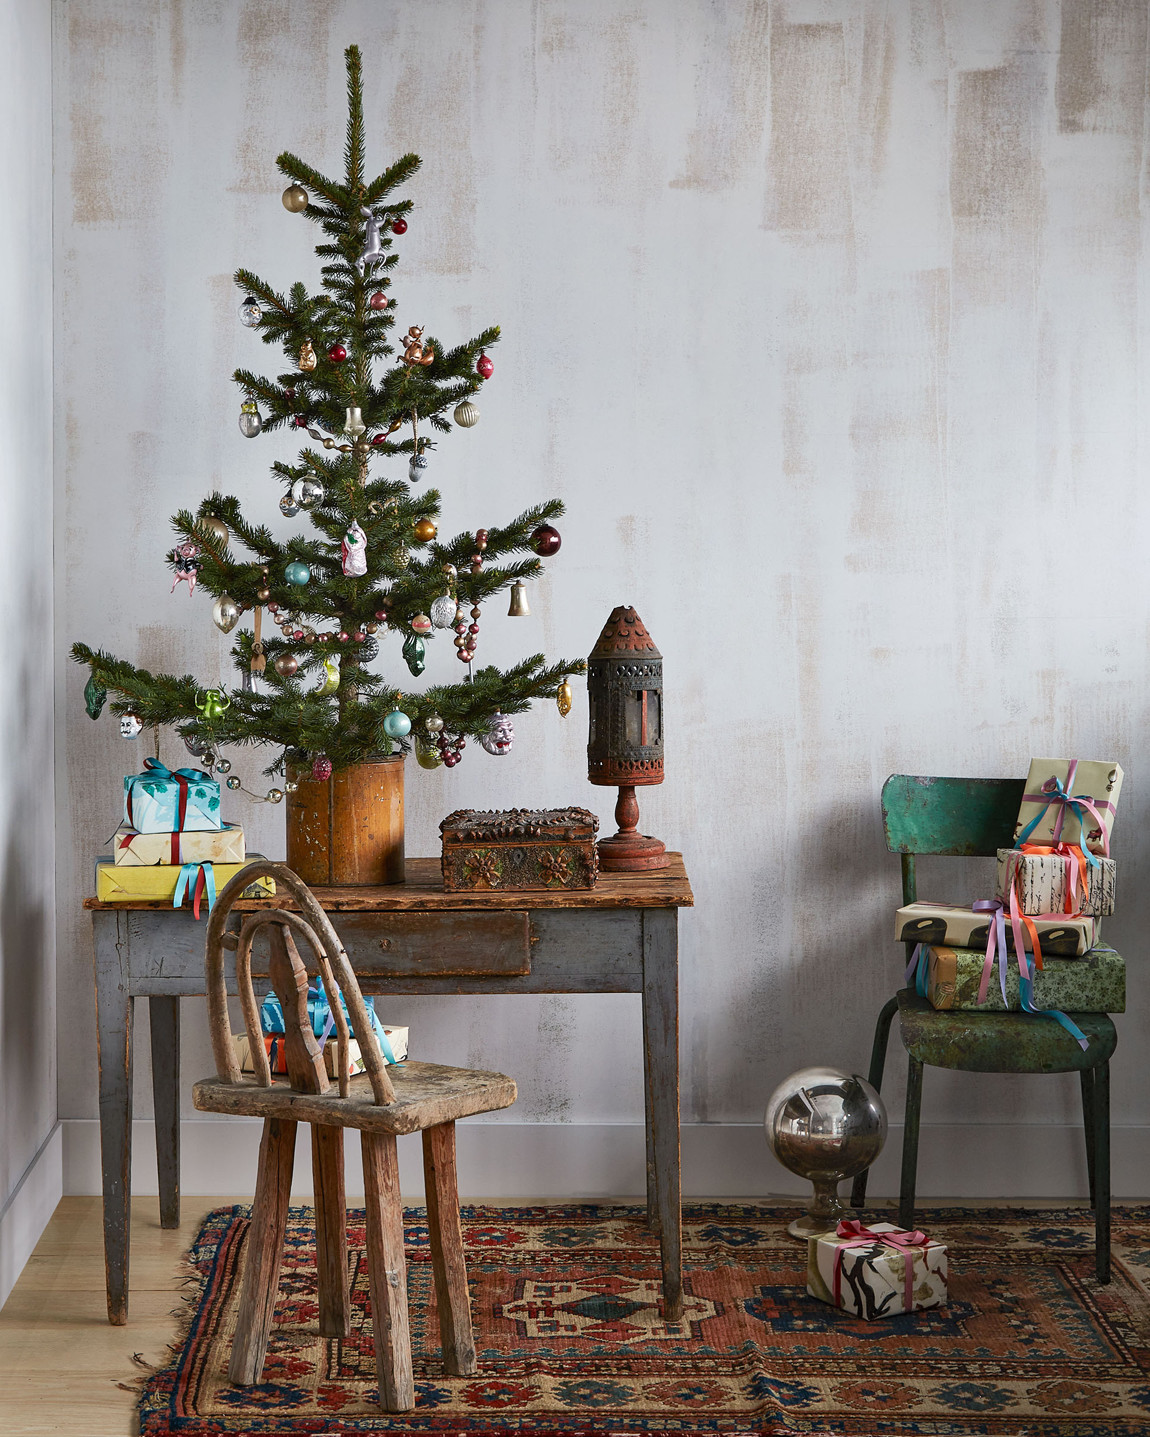 John Derian's Christmas tree of antique and vintage ornaments